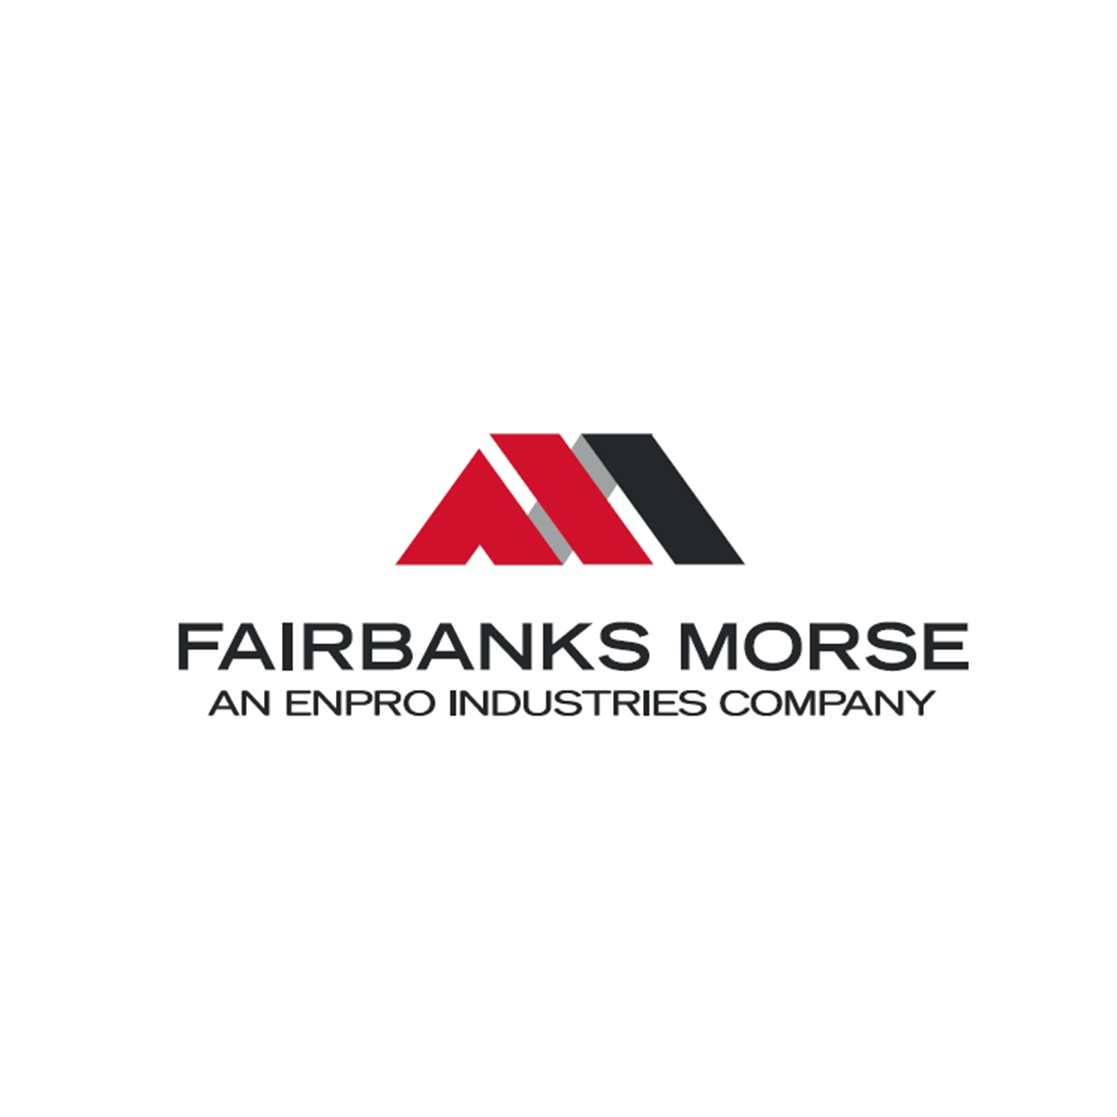 Fairbanks Morse Celebrates 125 Years By Introducing